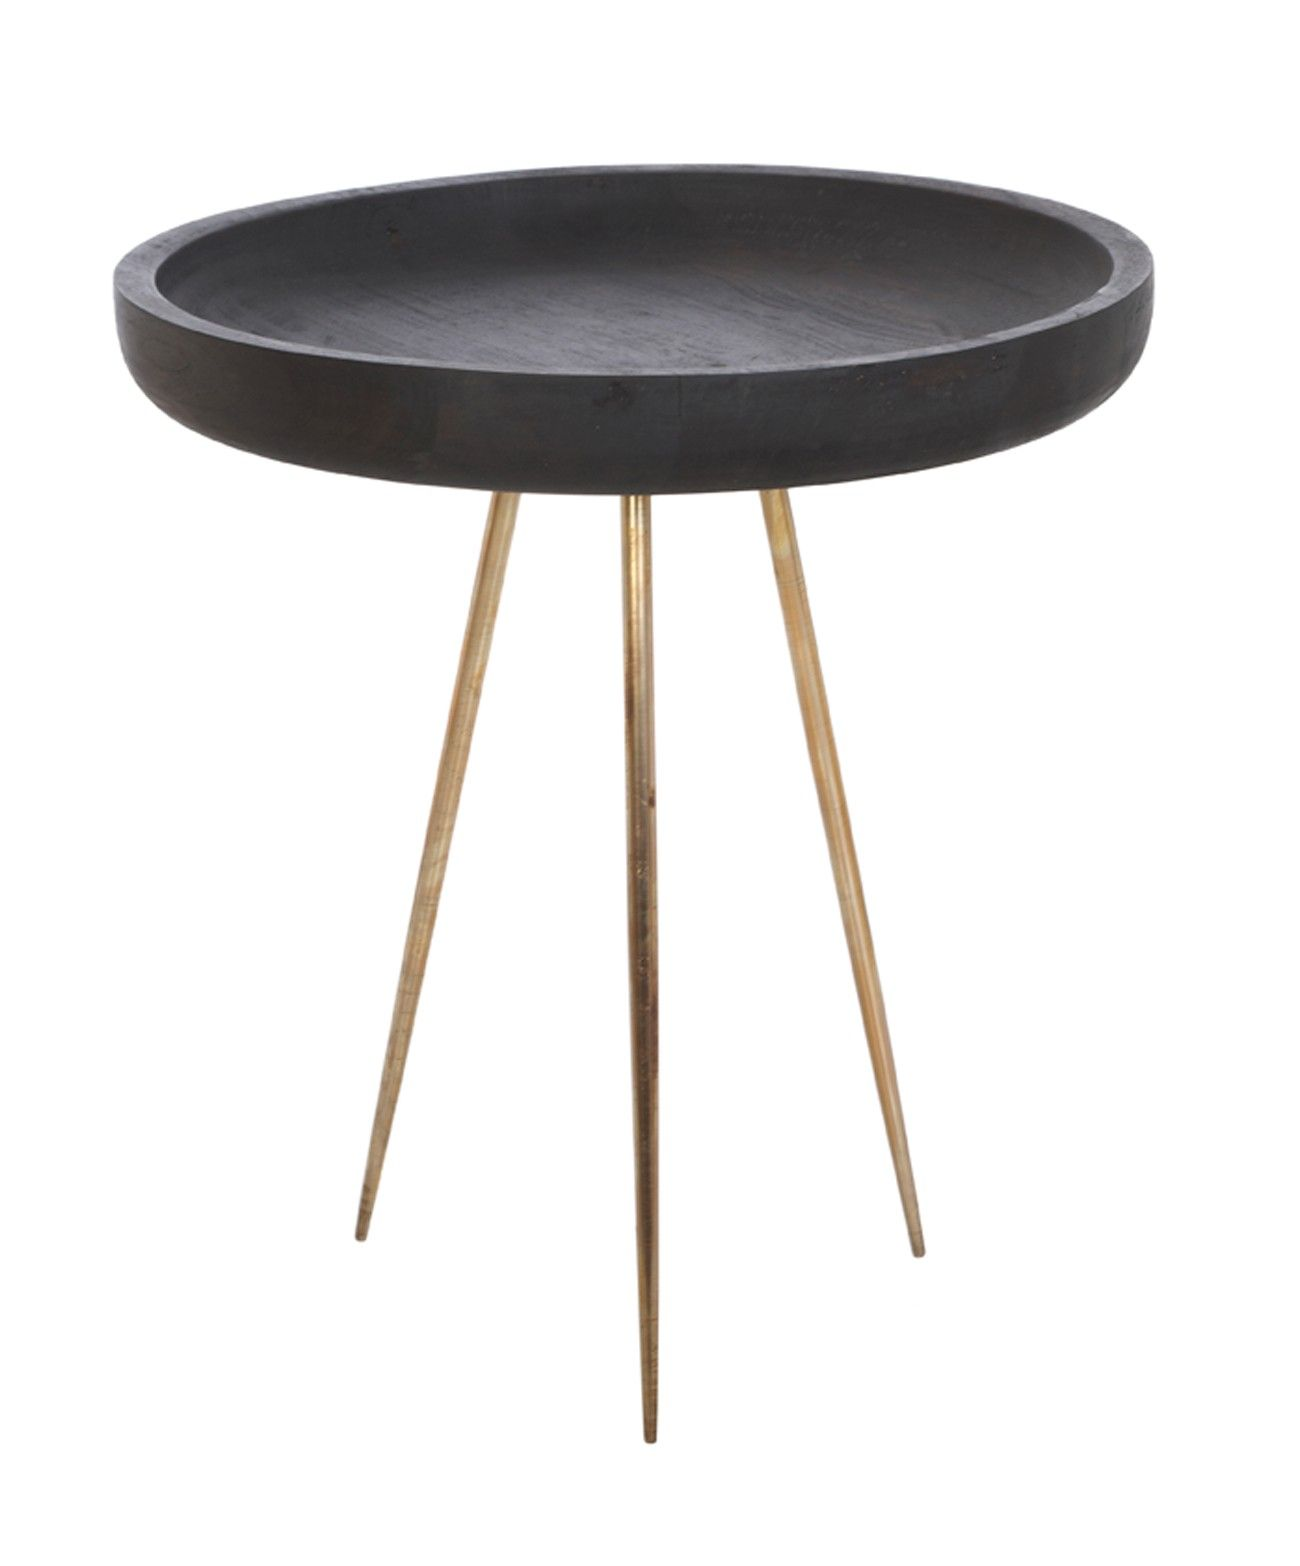 Attirant Arika Round Table